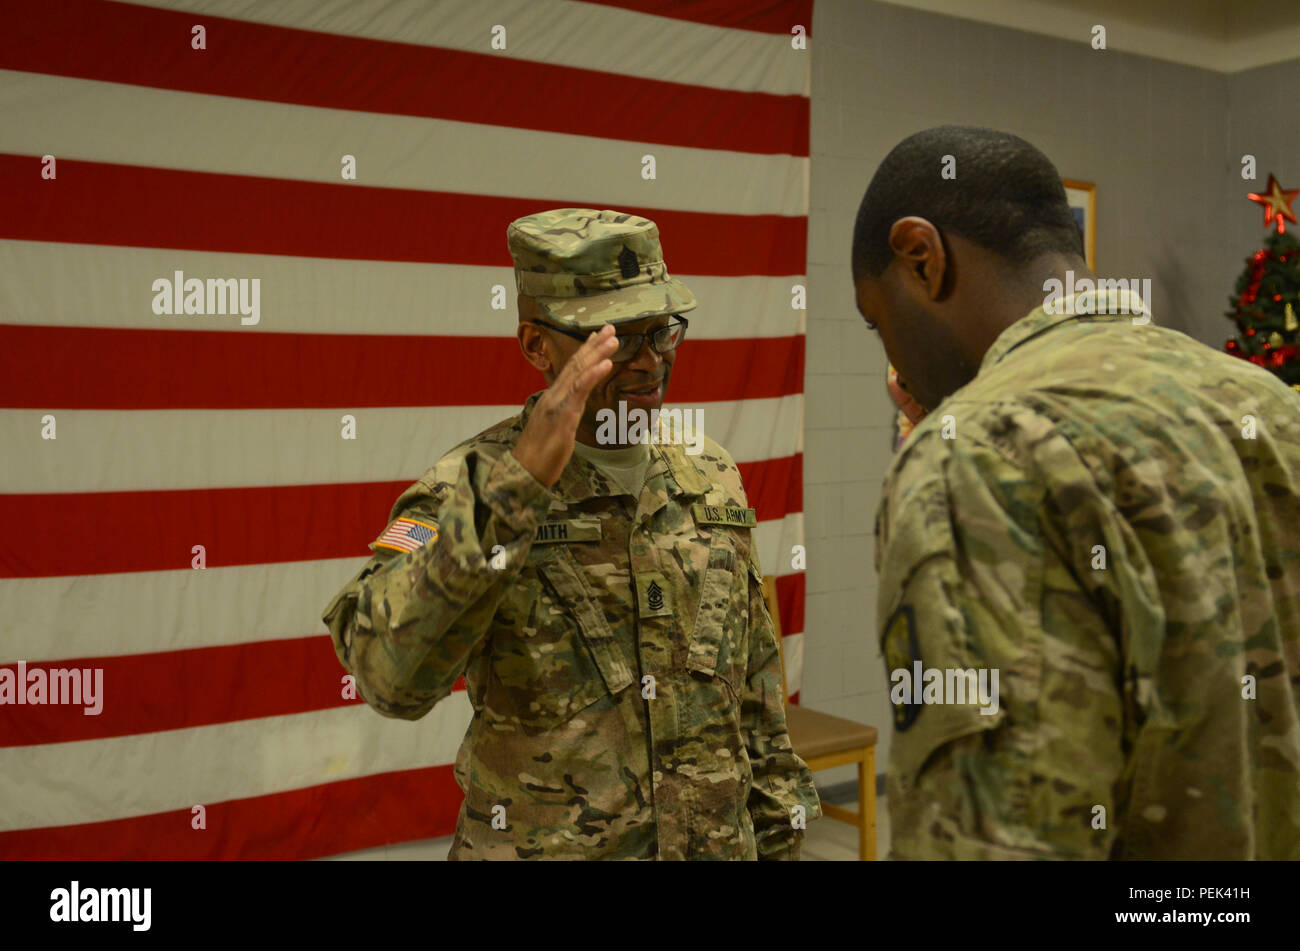 Newly promoted Sgt. Maj. Bryan Smith, the operations noncommissioned officer in charge of 149th Human Resource Texas Army National Guard, originally from Freeport, Texas, salutes Capt. Joseph Taylor, the commander of Task Force Warhammer, originally from Richmond, Va., after Capt. Taylor places the SGM patrol cap on SGM Smith during his promotion ceremony at Mihail Kogălniceanu Air Force Base, Romania, Dec. 10, 2015. (U.S. Army Photo by Staff Sgt. Steven M. Colvin/Released) - Stock Image